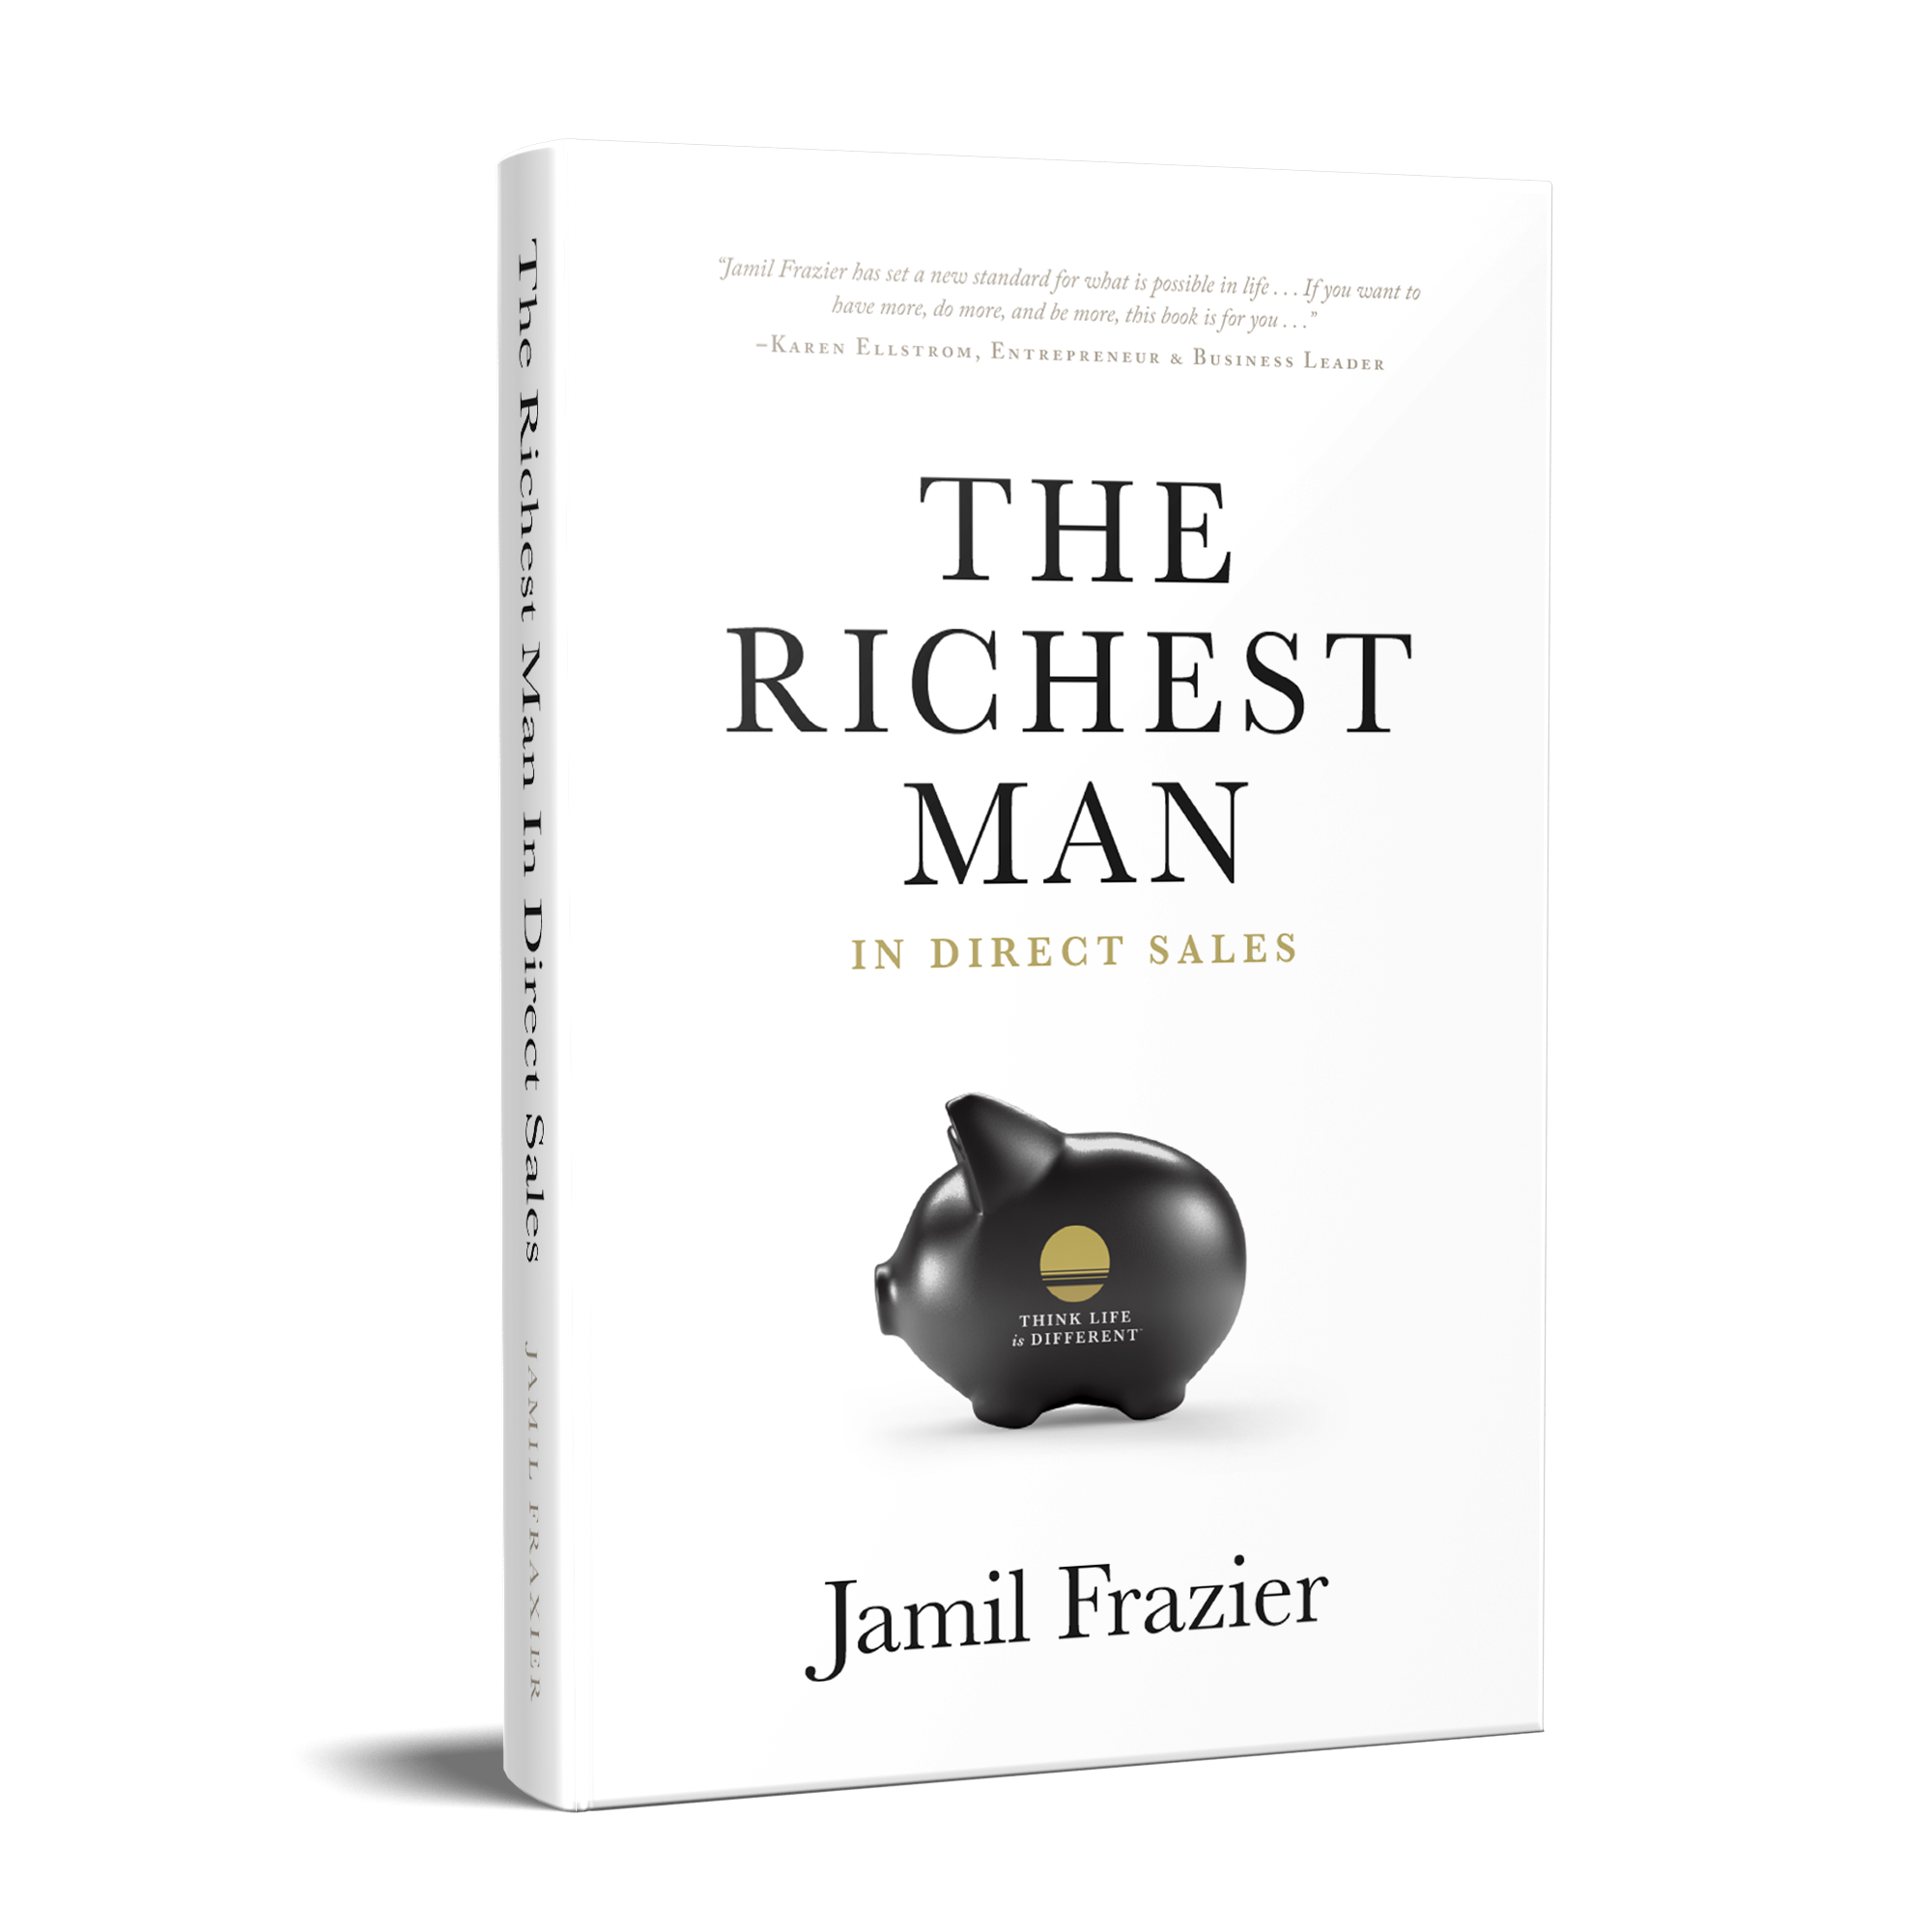 Cover image for The Richest Man in Direct Sales Book